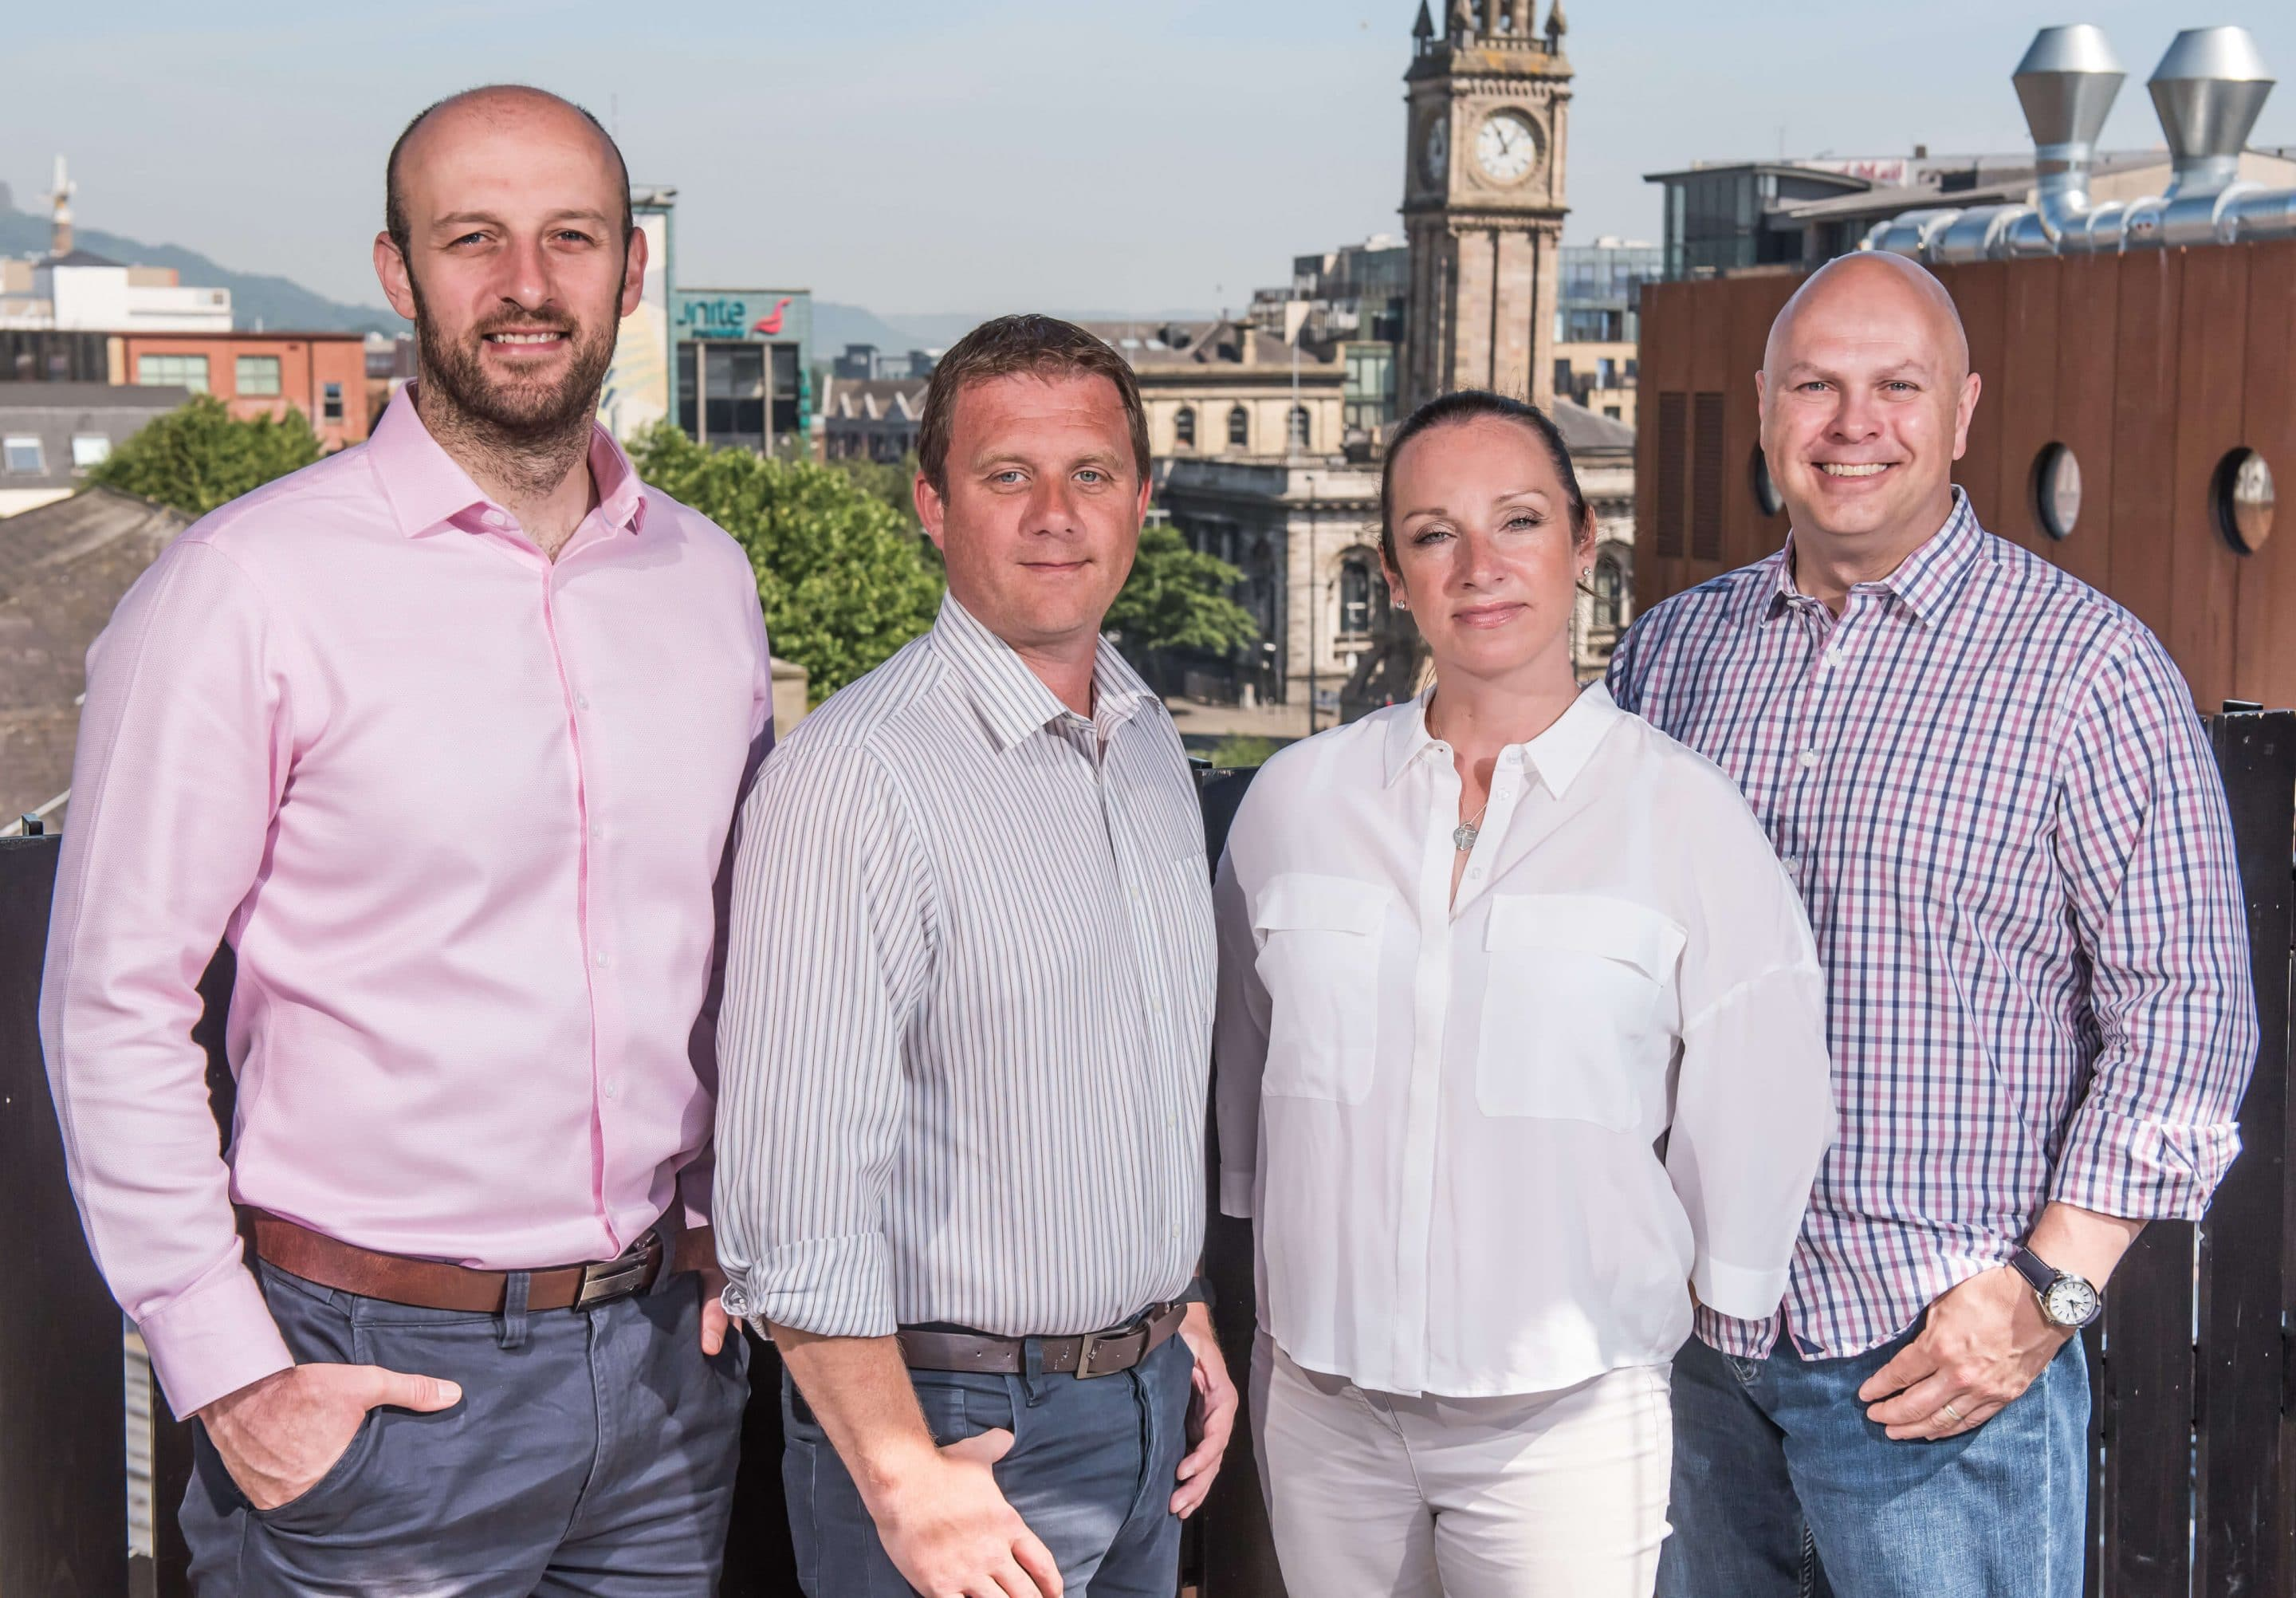 Big Data Belfast conference returns on October 18th in Belfast Waterfront featured image